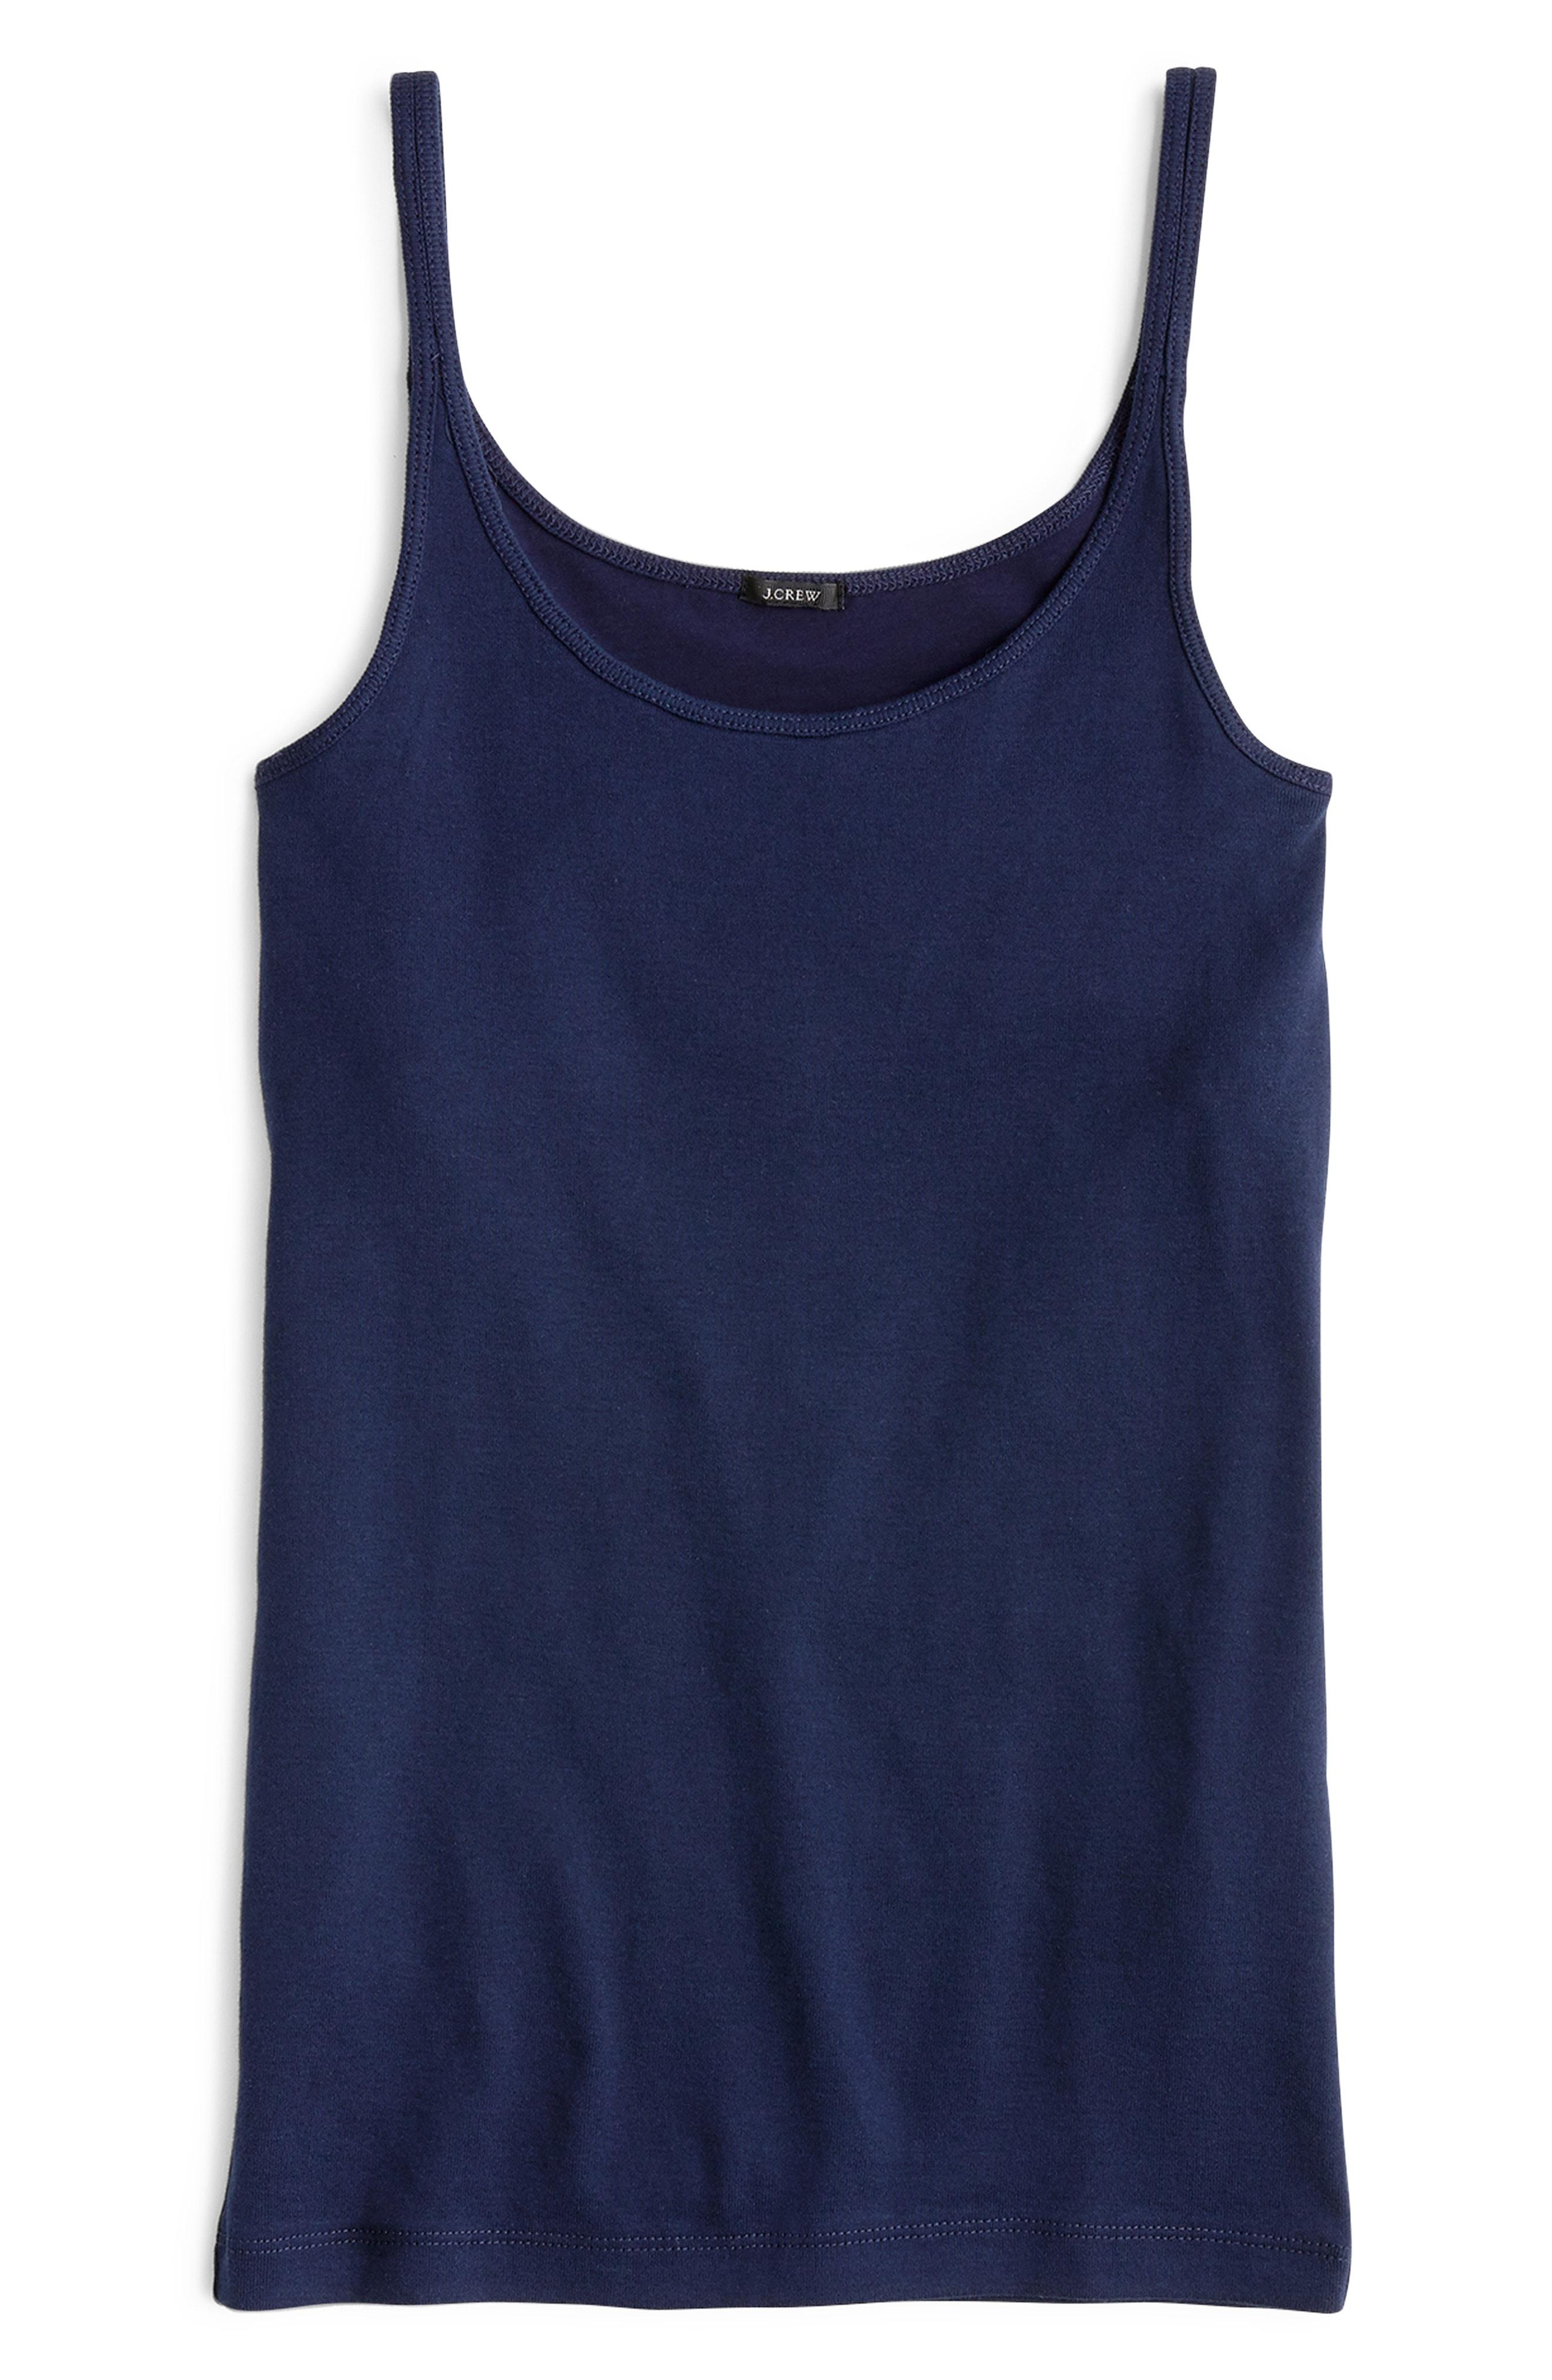 bc27fb1bdf330 Lyst - J.Crew Slim Perfect Fit Tank With Built-in Bra in Blue